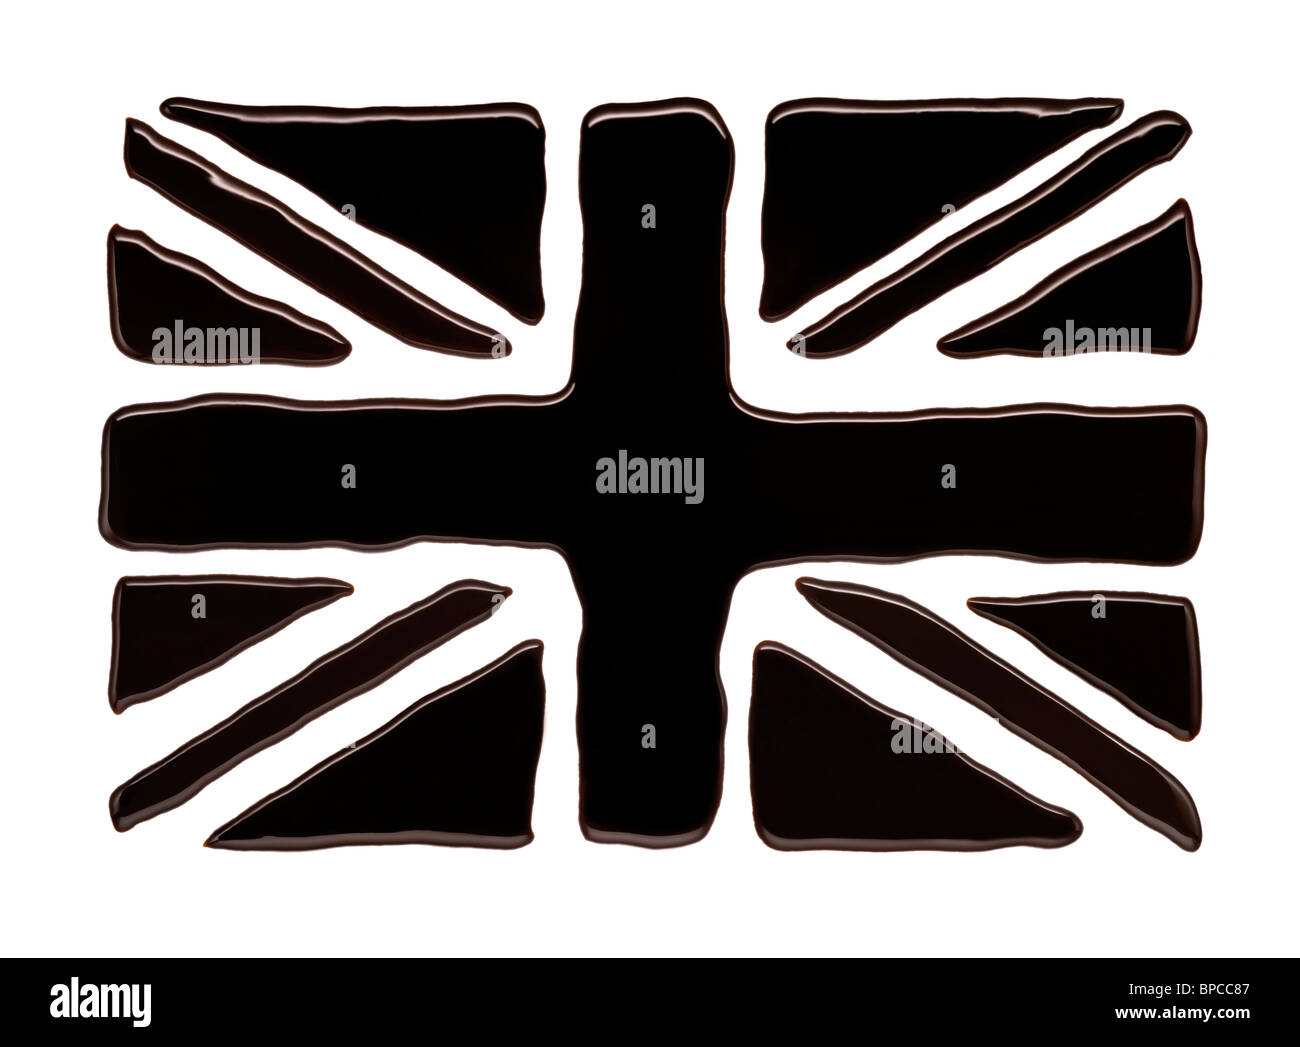 The Union Jack Flag made of Oil - Stock Image